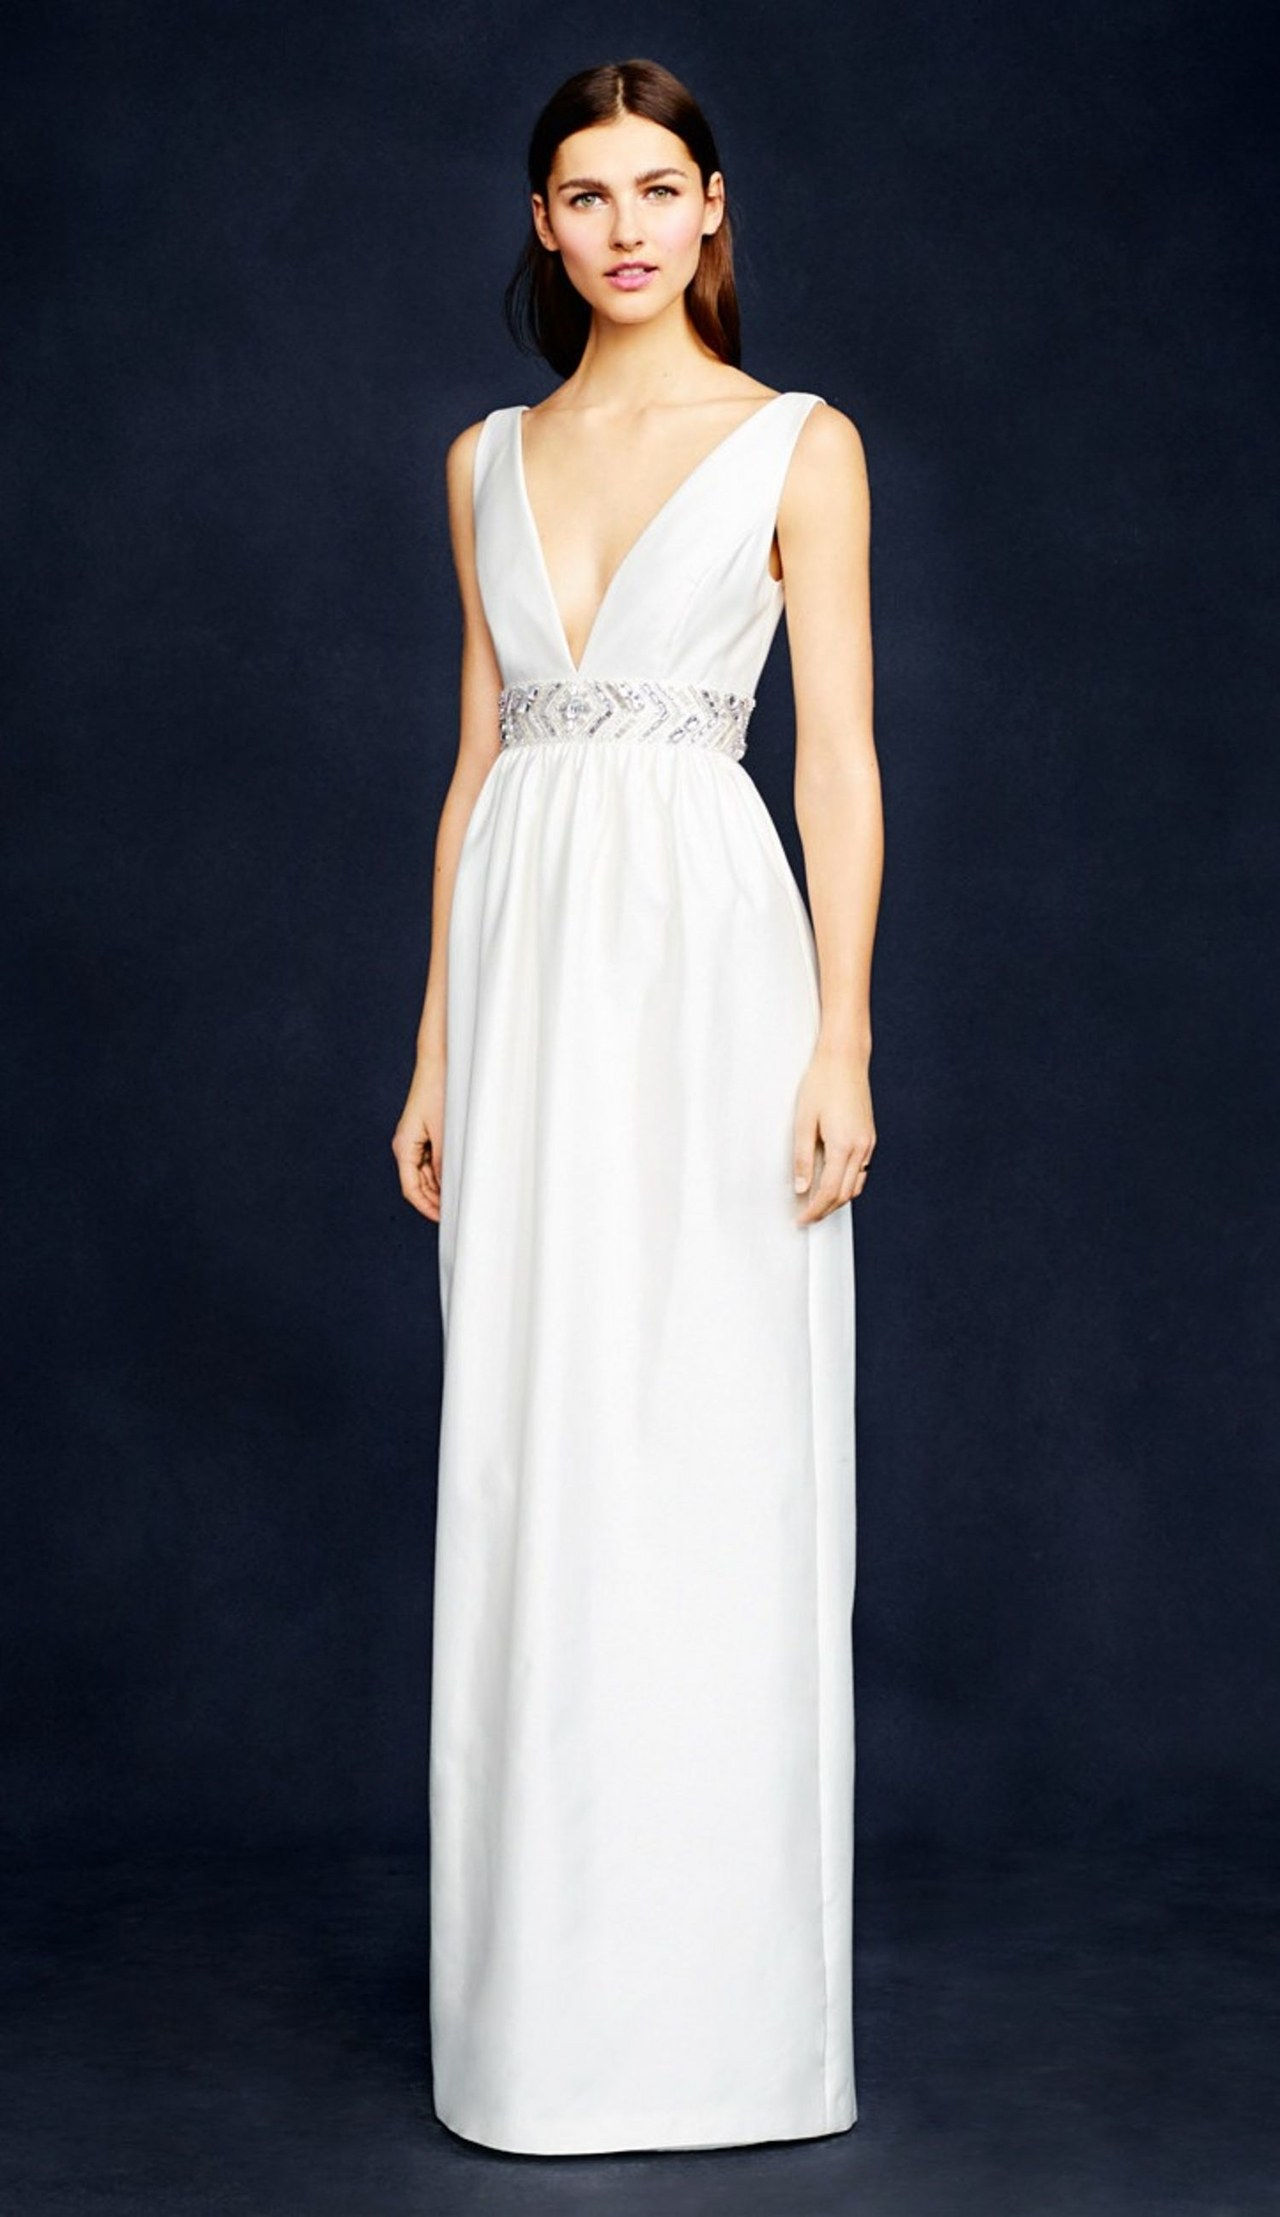 4 minimalist wedding dresses jcrew 0922